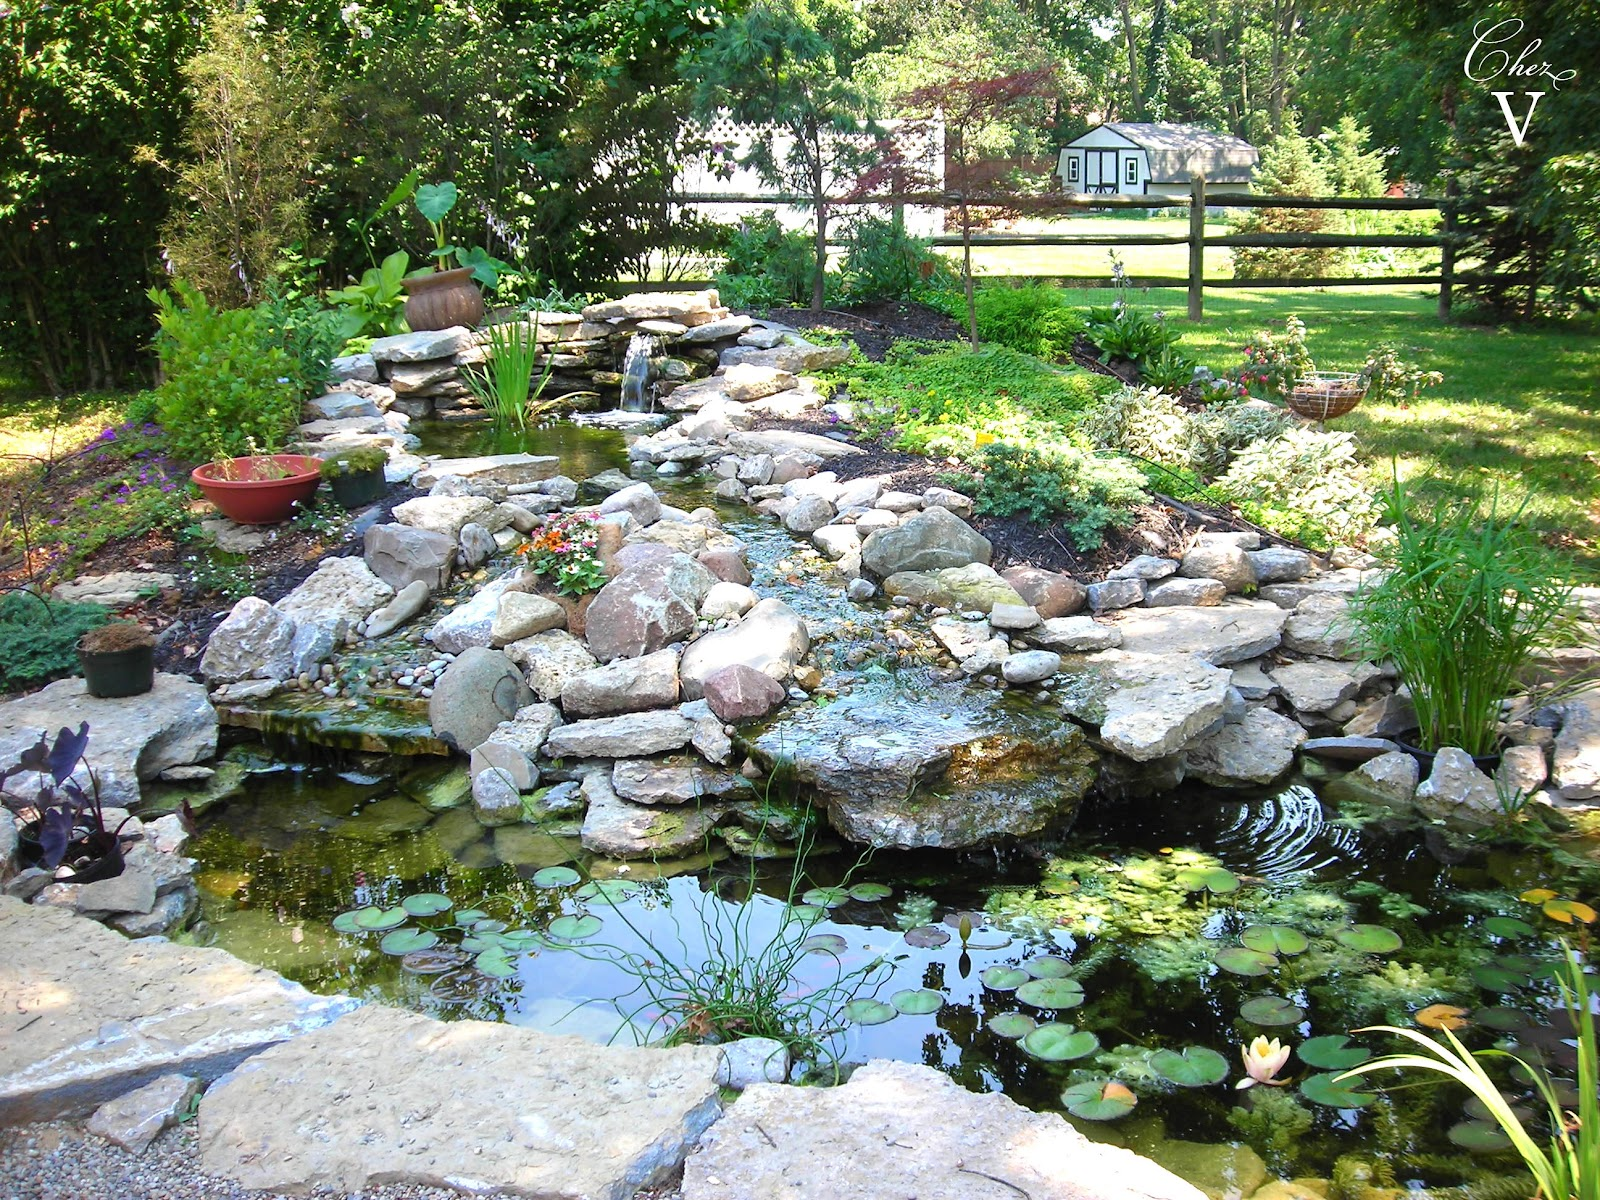 Chez v tales from the projects diy paver patio pond for Outdoor pond